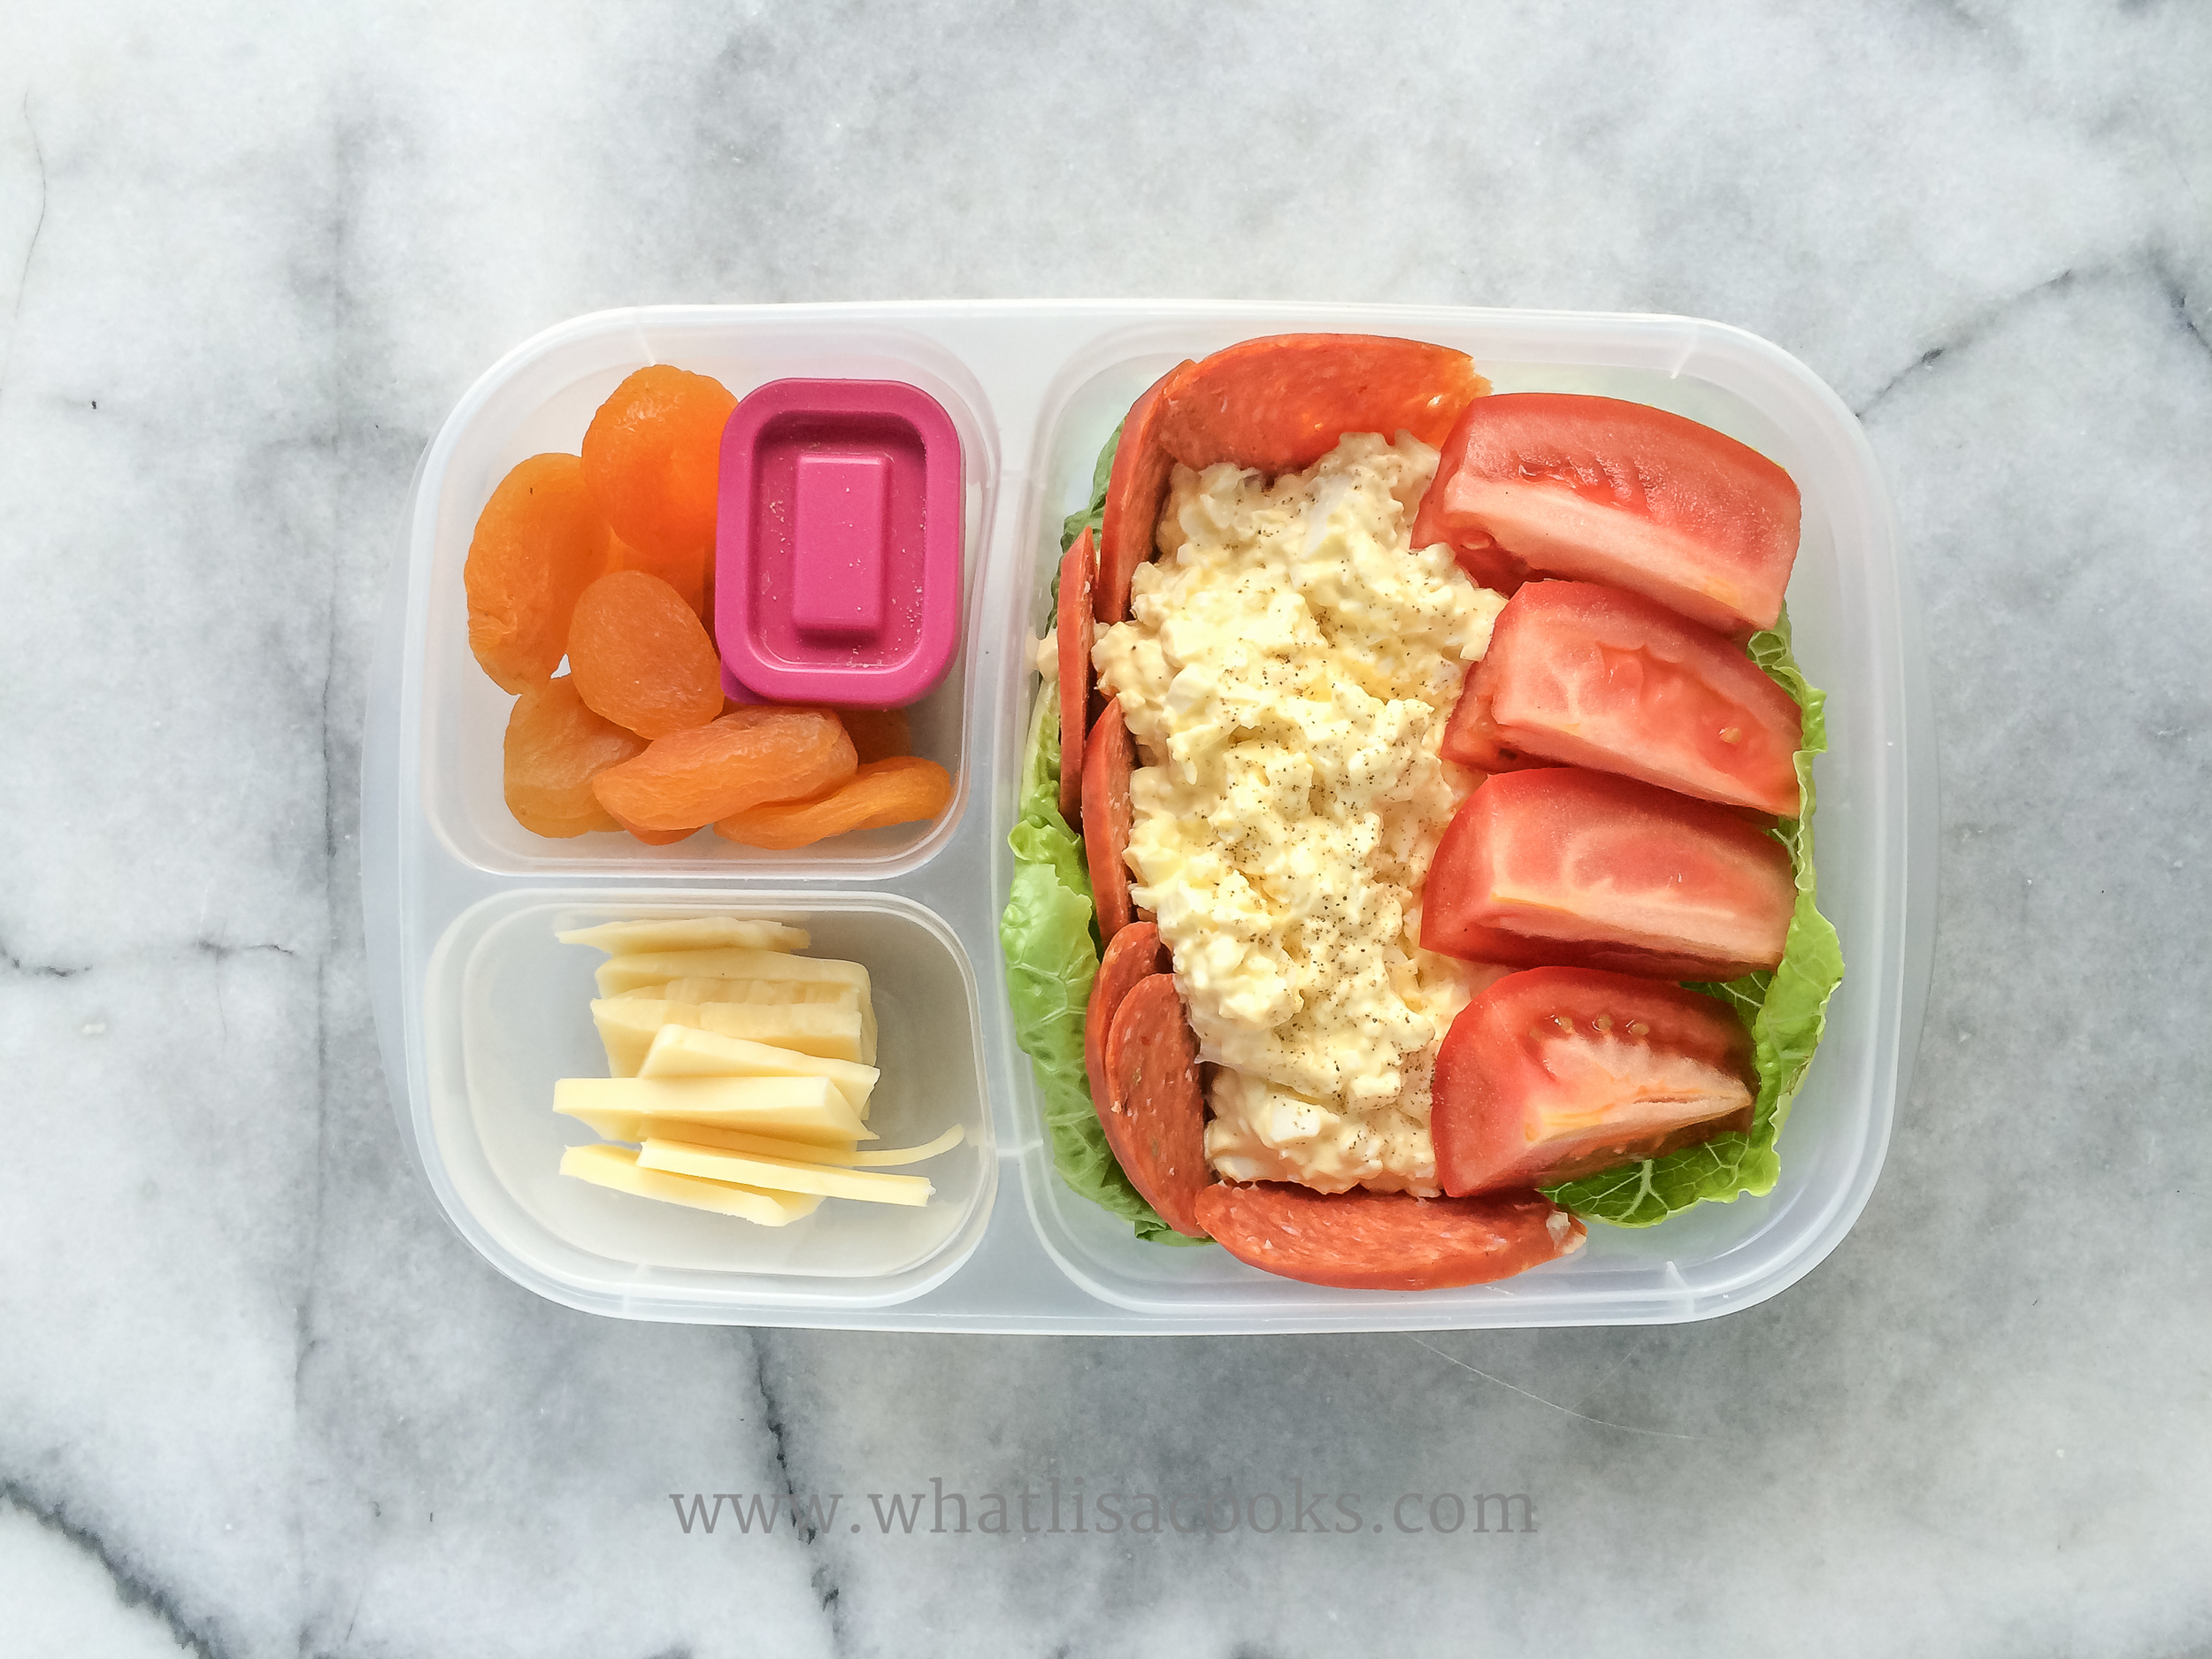 Egg salad - I like it simple, just mayo, salt, pepper.  On top of lettuce, with slices of pepperoni, a roma tomato quartered, slices of jack cheese, apricots.  The pink container has some extra salt for the tomatoes.